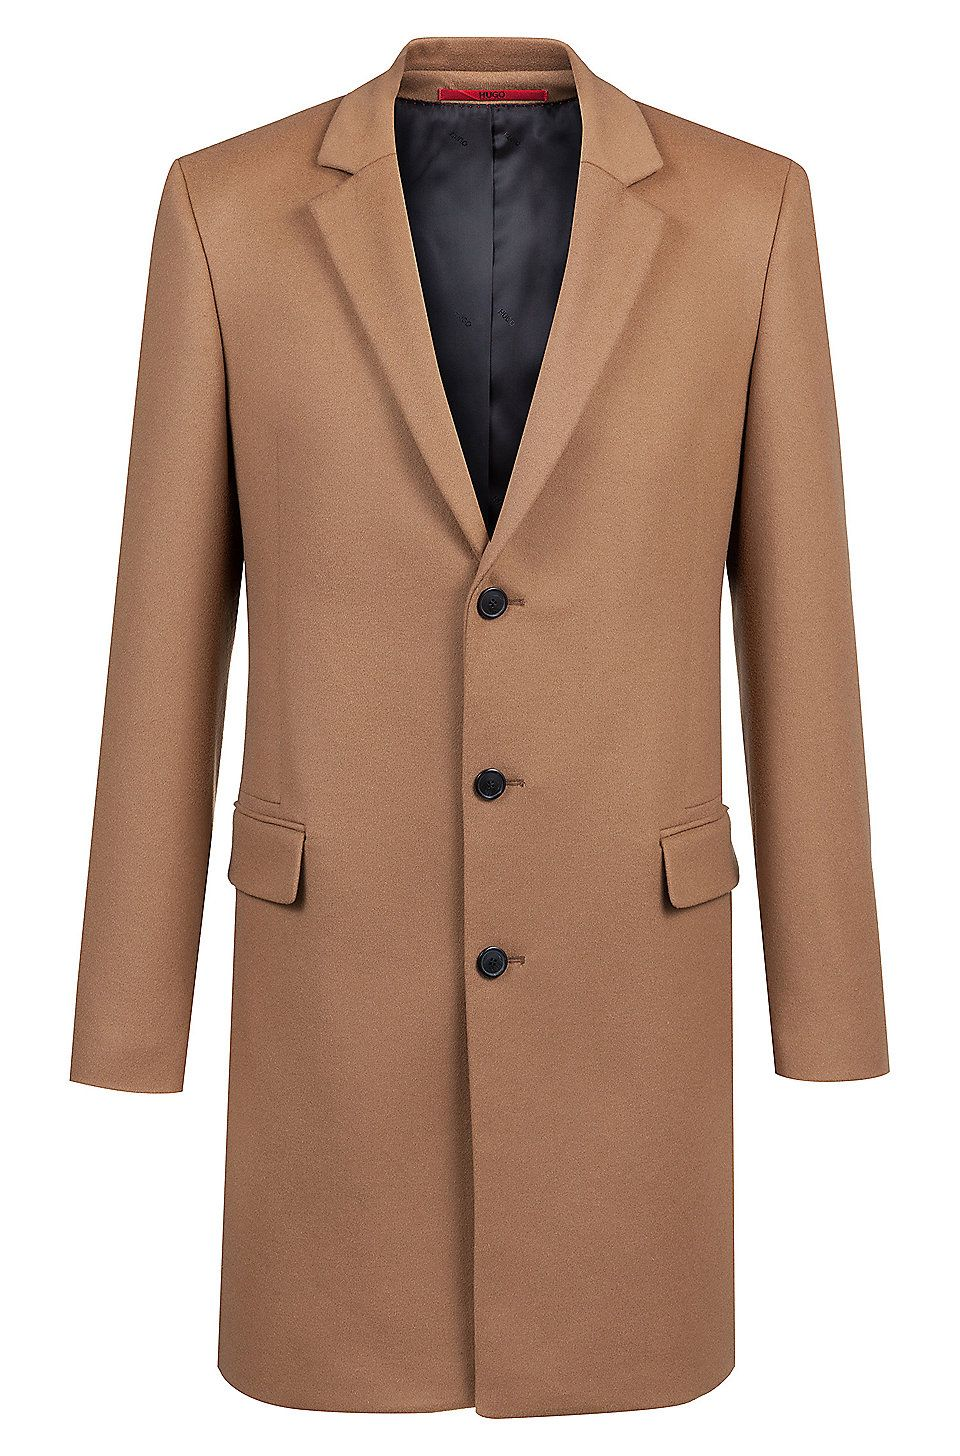 Hugo Boss Extra Slim Fit Jacket In Virgin Wool With Cashmere Brown Casual Coats From Hugo For Men In The Official Hugo Boss Online Store Free Shipping [ 1456 x 960 Pixel ]